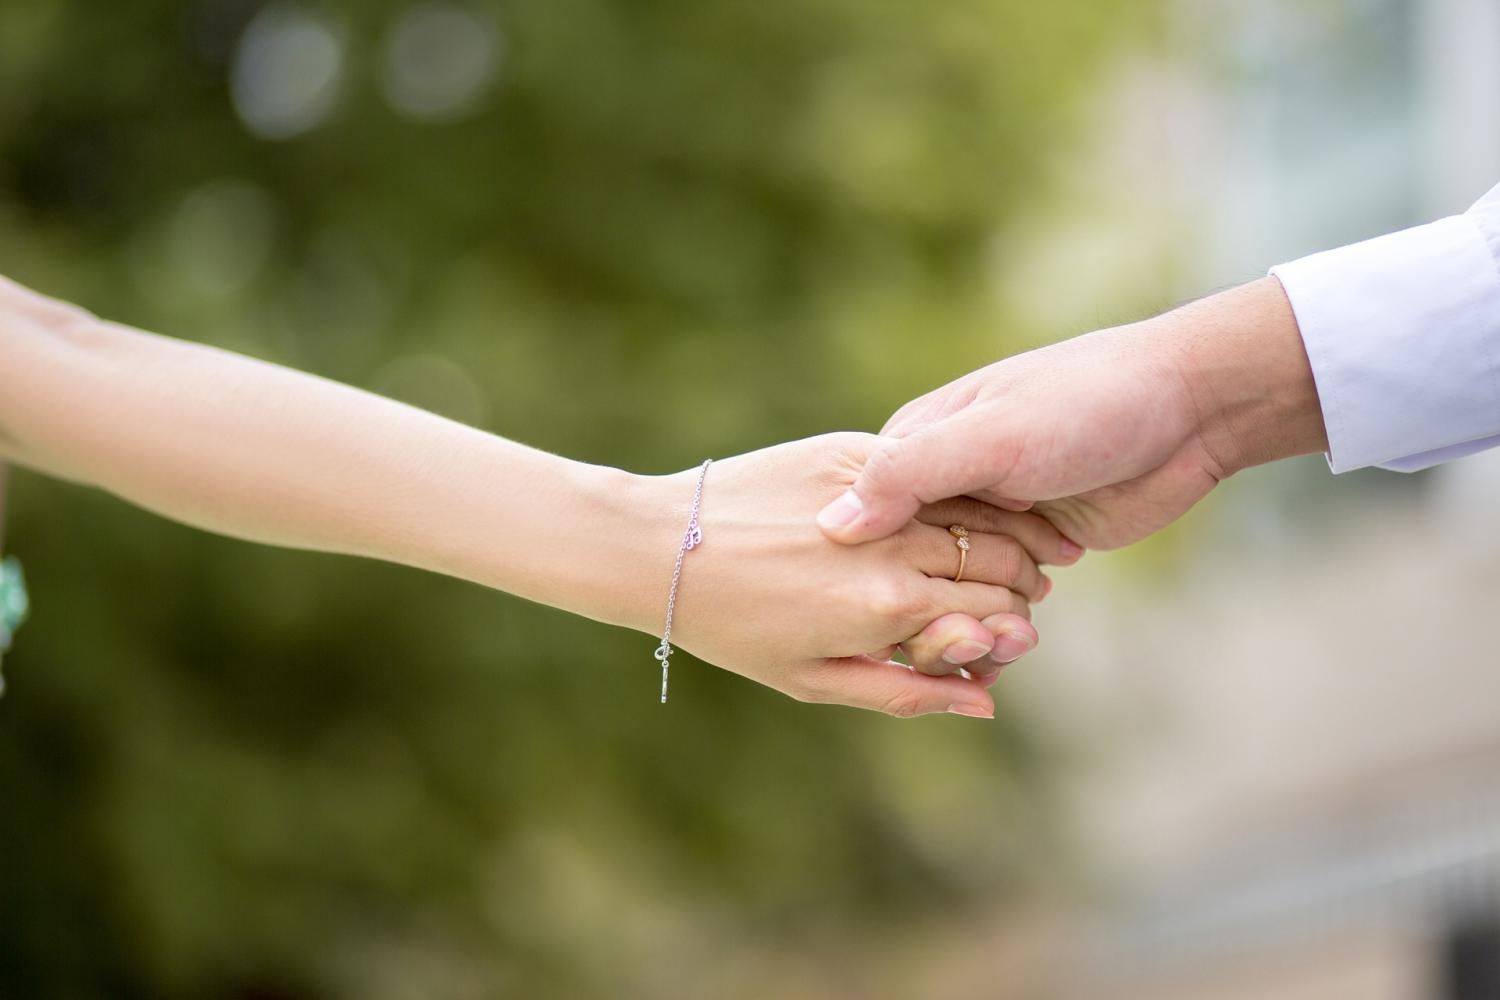 stock image of people holding hands